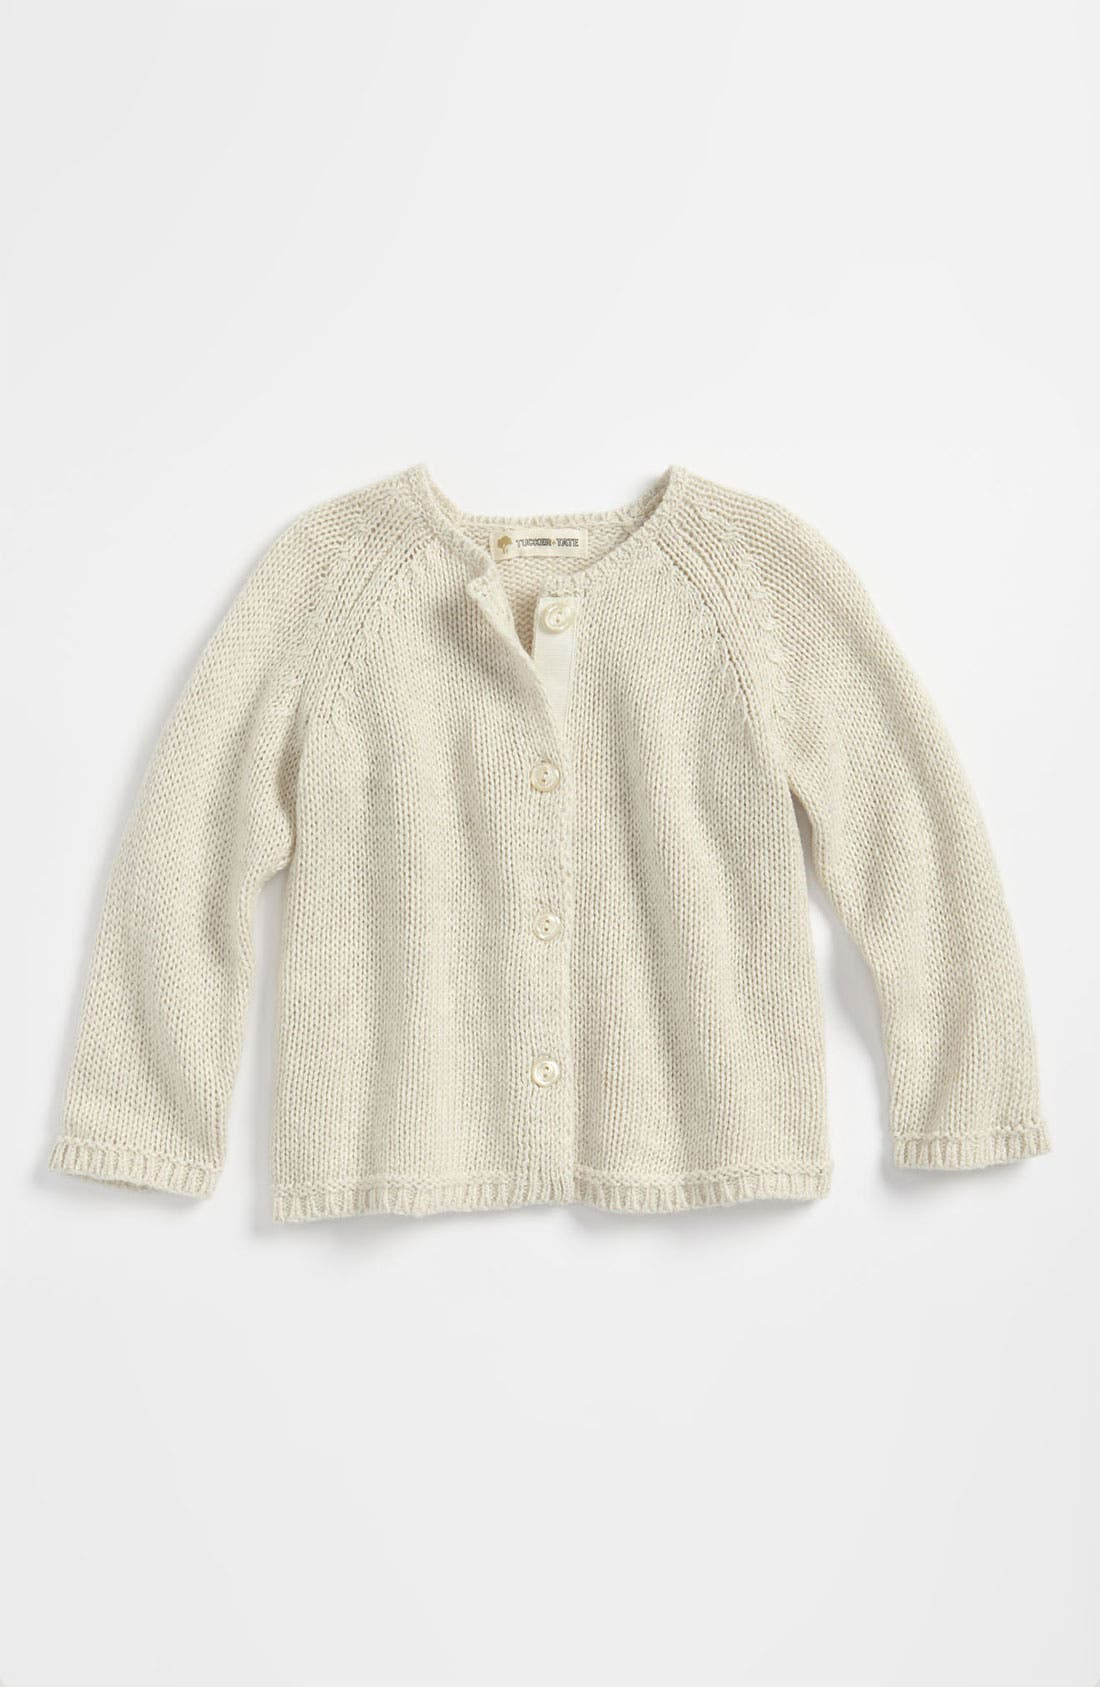 Main Image - Tucker + Tate 'Amber' Cardigan (Toddler)